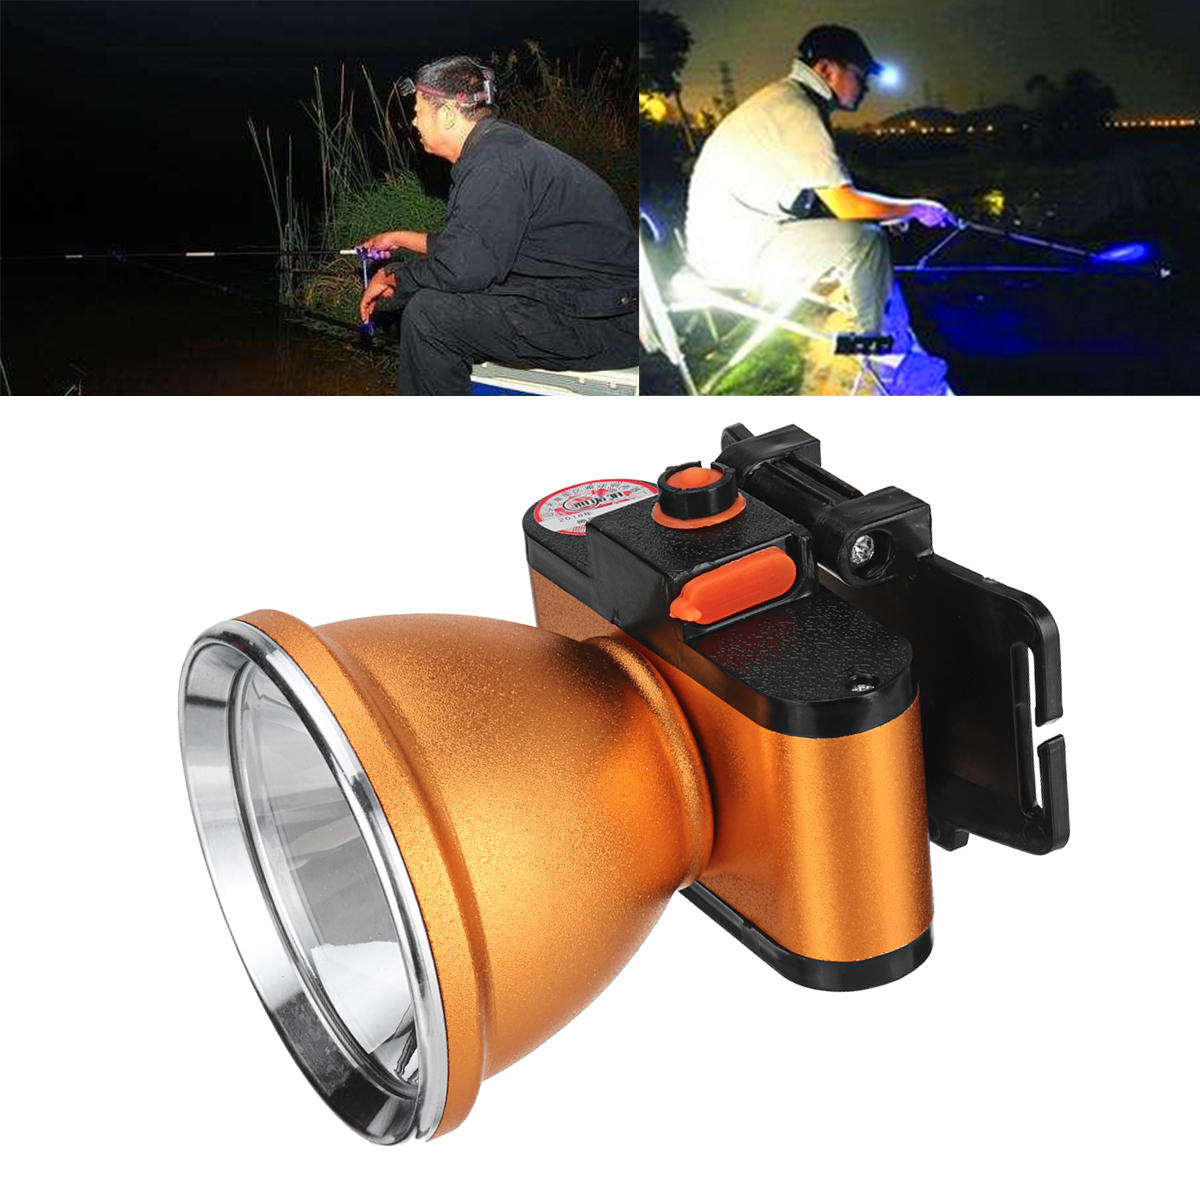 BIKIGHT 35/50/60W T6 Mini LED High Brightness Fishing Headlamp IPX4 Waterproof Flashlight Torch Lamp фото